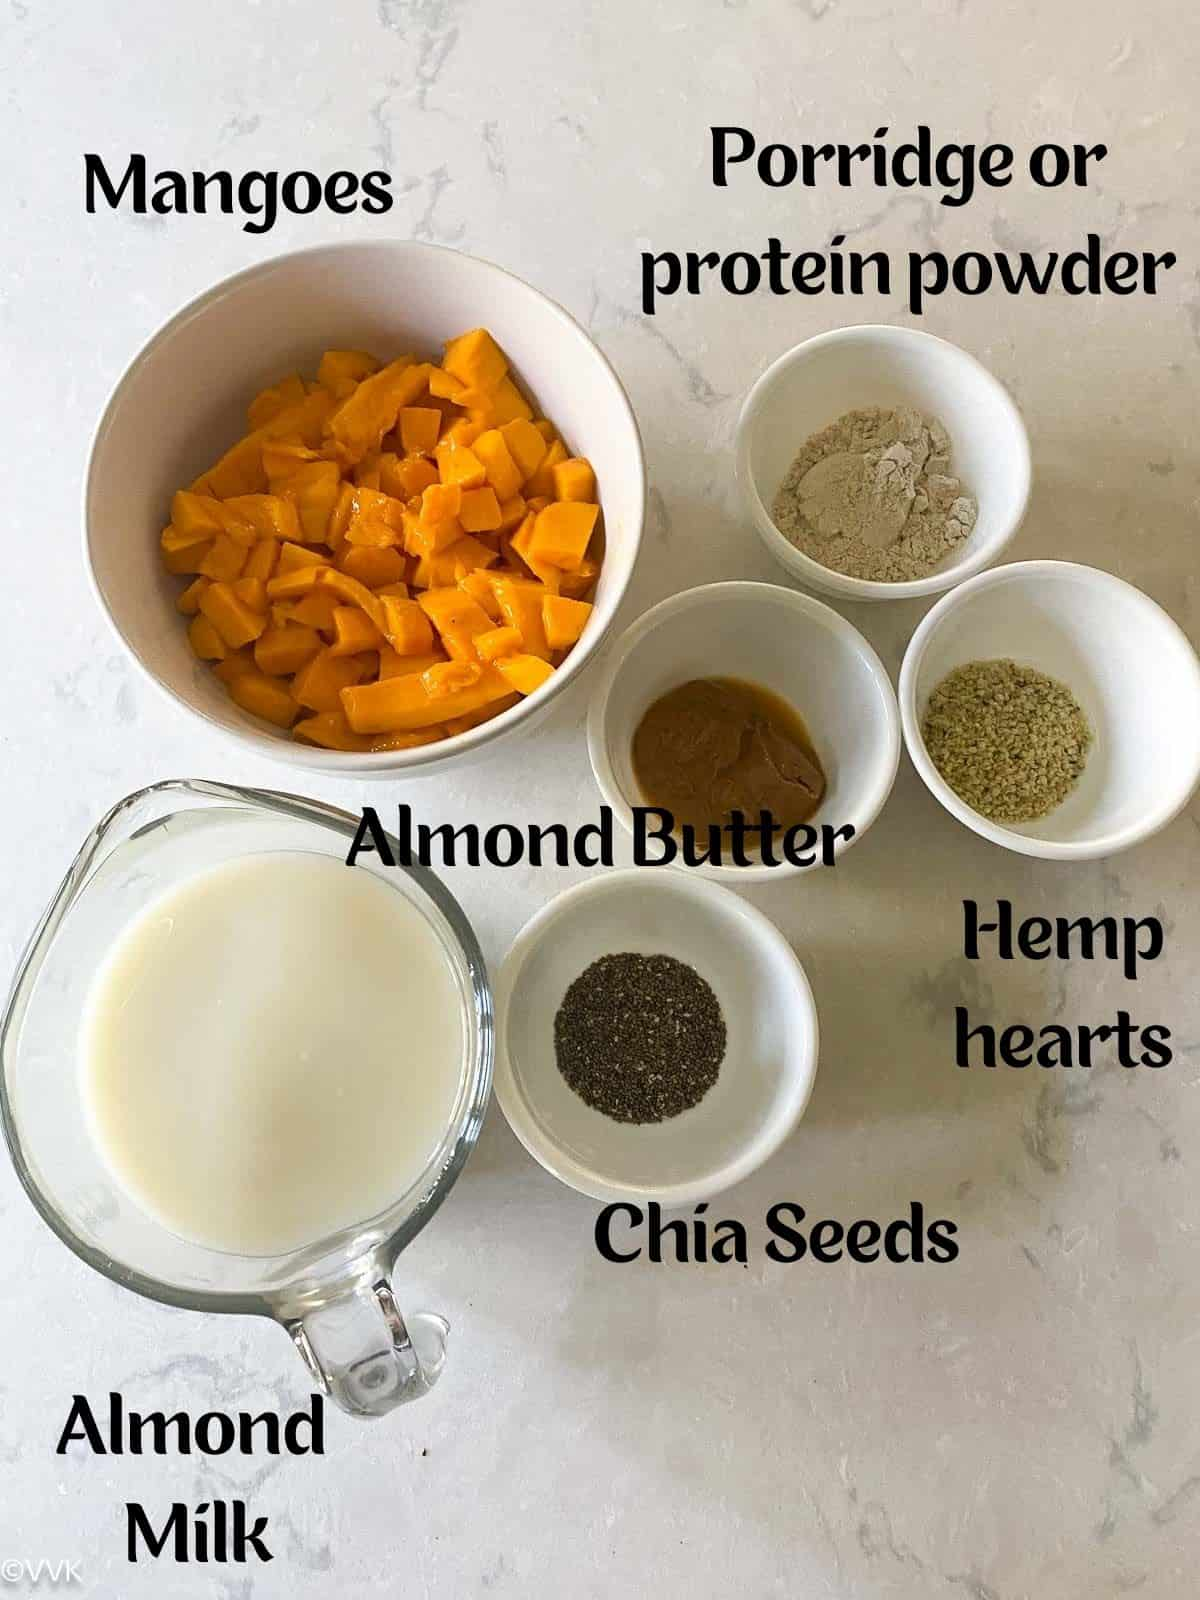 image containing the details of ingredients required for making this mango breakfast smoothie